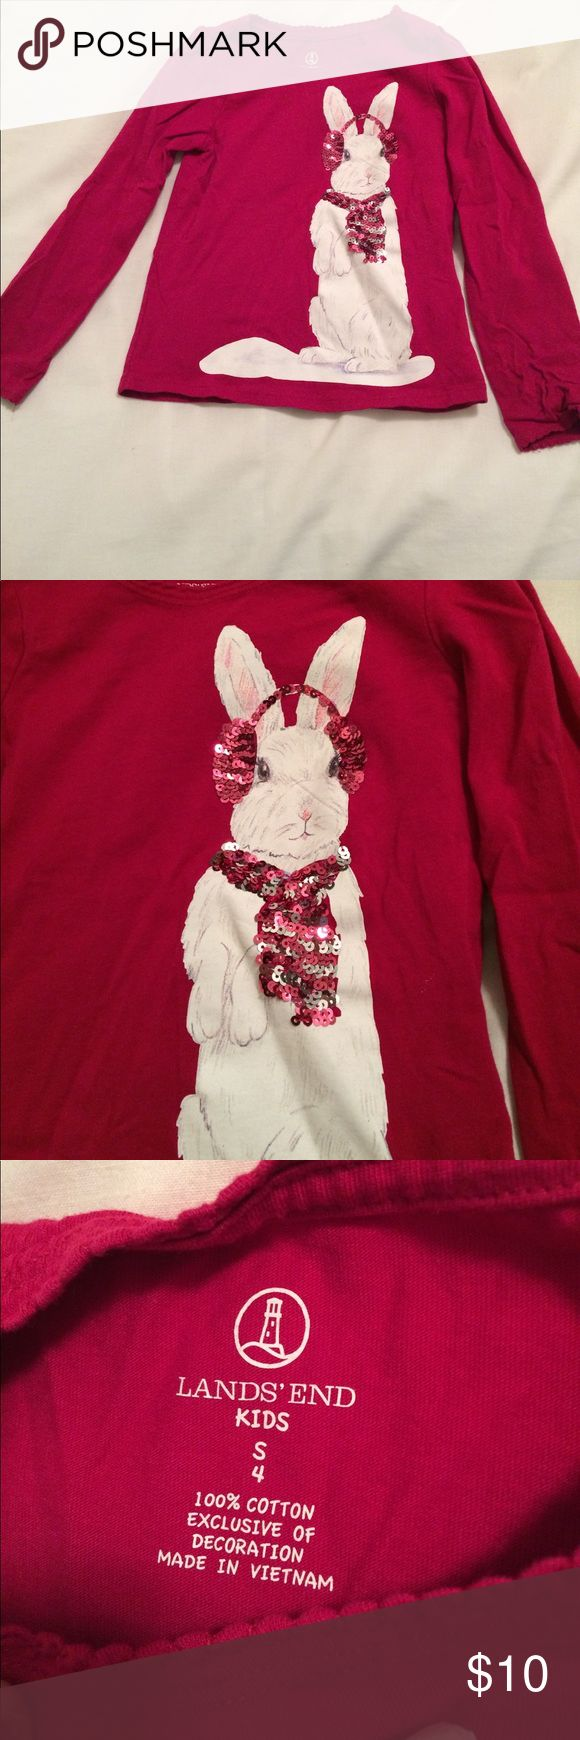 Great used condition! Lands end kids top Great used condition! Lands' End kids longsleeved T-shirt. A bunny with sequin embellishments. Size S/4. Lands' End Shirts & Tops Tees - Long Sleeve